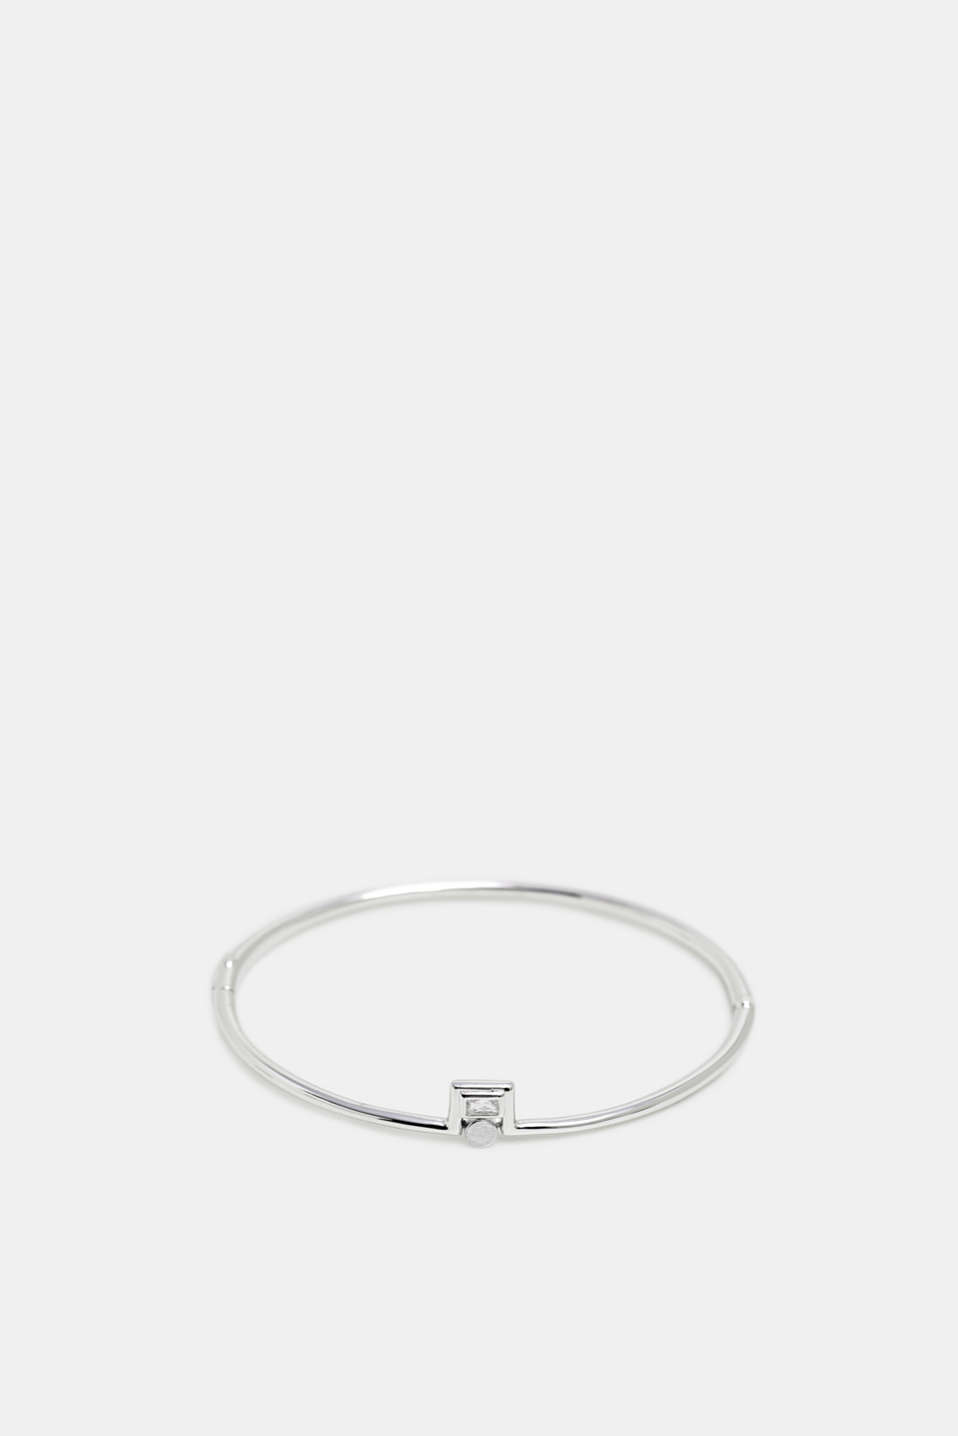 Esprit - Bangle with zirconia, sterling silver